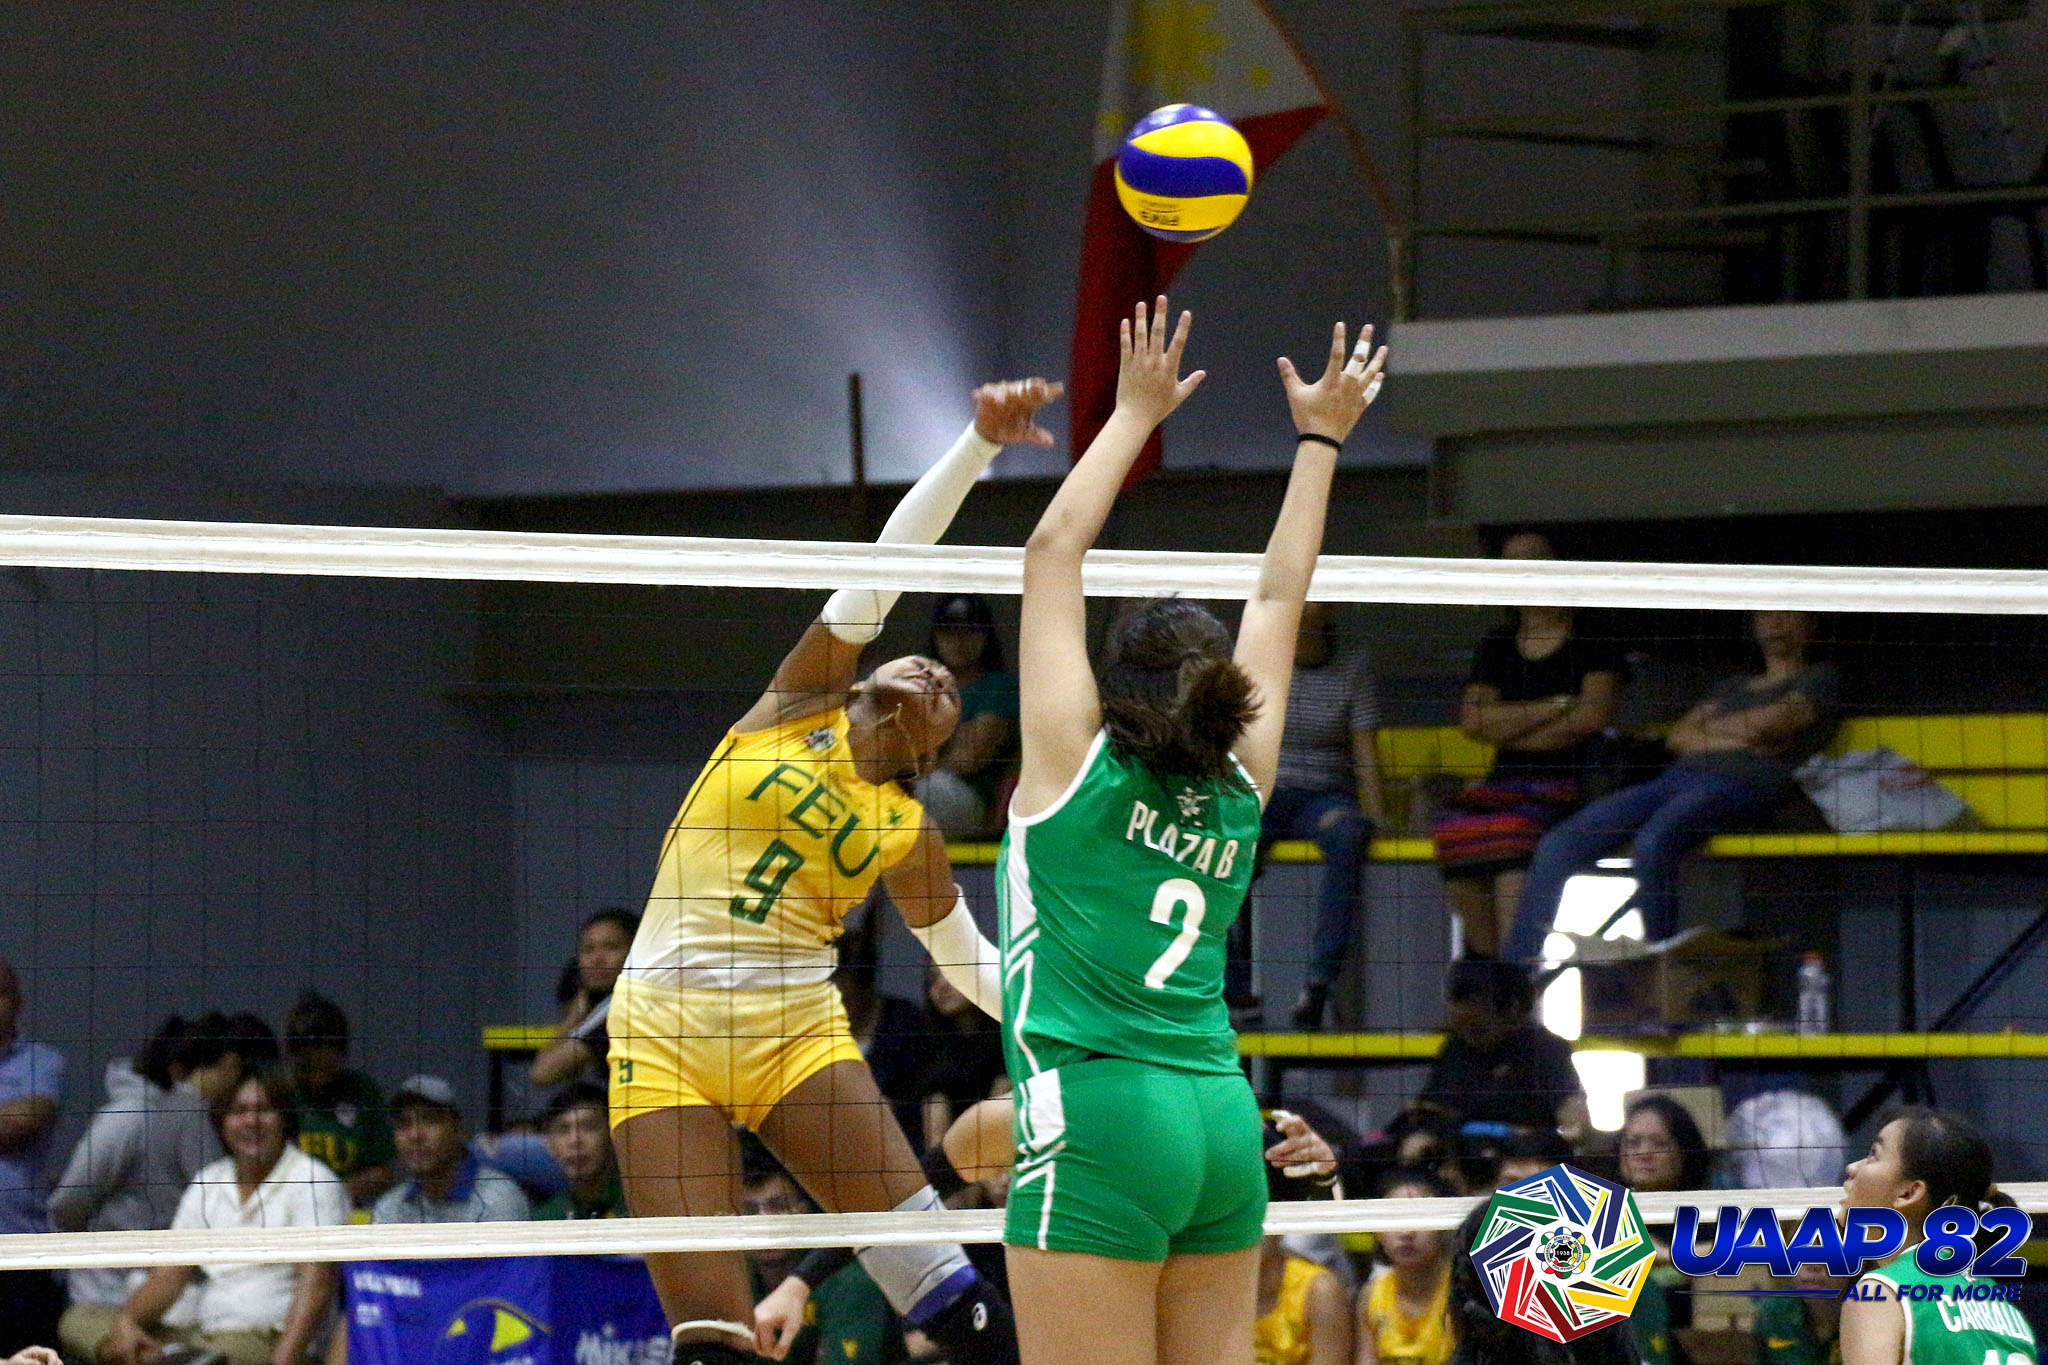 Tiebreaker Times UST, Adamson go to 2-0 as FEU-D stuns DLSZ in UAAP Girls' Volleyball AdU DLSU FEU News UAAP UE UP UST Volleyball  Zey Pacio UST Girls Volleyball UP Girls Volleyball UE Girls Volleyball UAAP Season 82 Girls Volleyball UAAP Season 82 Rjhay Del Rosario Renee Penafiel Regina Jurado Raisa Ricablanca Lyann De Guzman Lerma Giron FEU Girls Volleyball DLSZ Girls Volleyball Angel Canino Alexis Miner Adamson Girls Volleyball